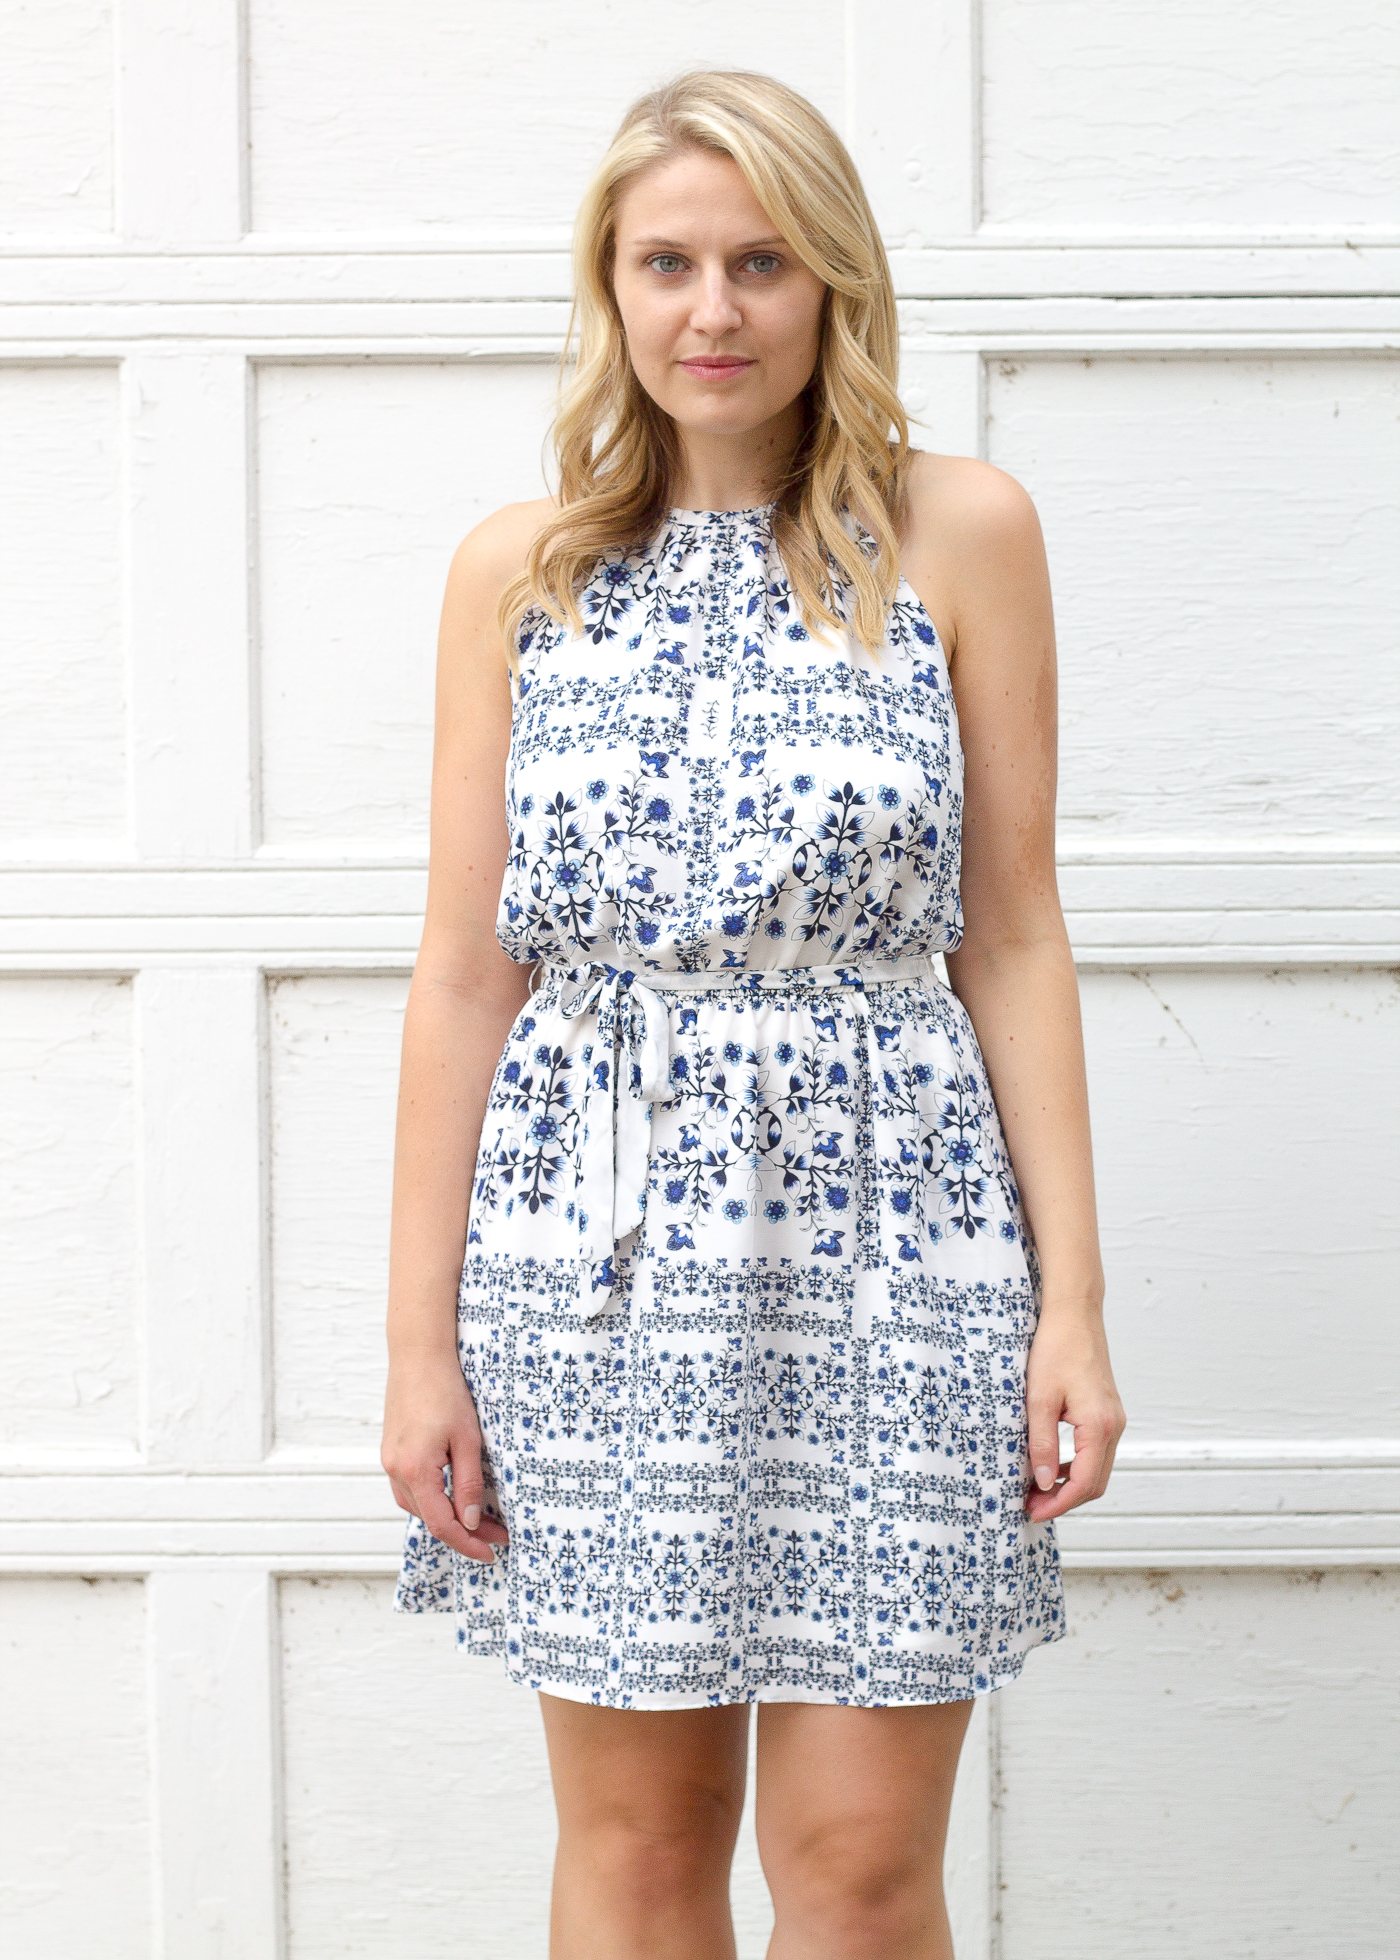 Aqua blue and white summer print dress